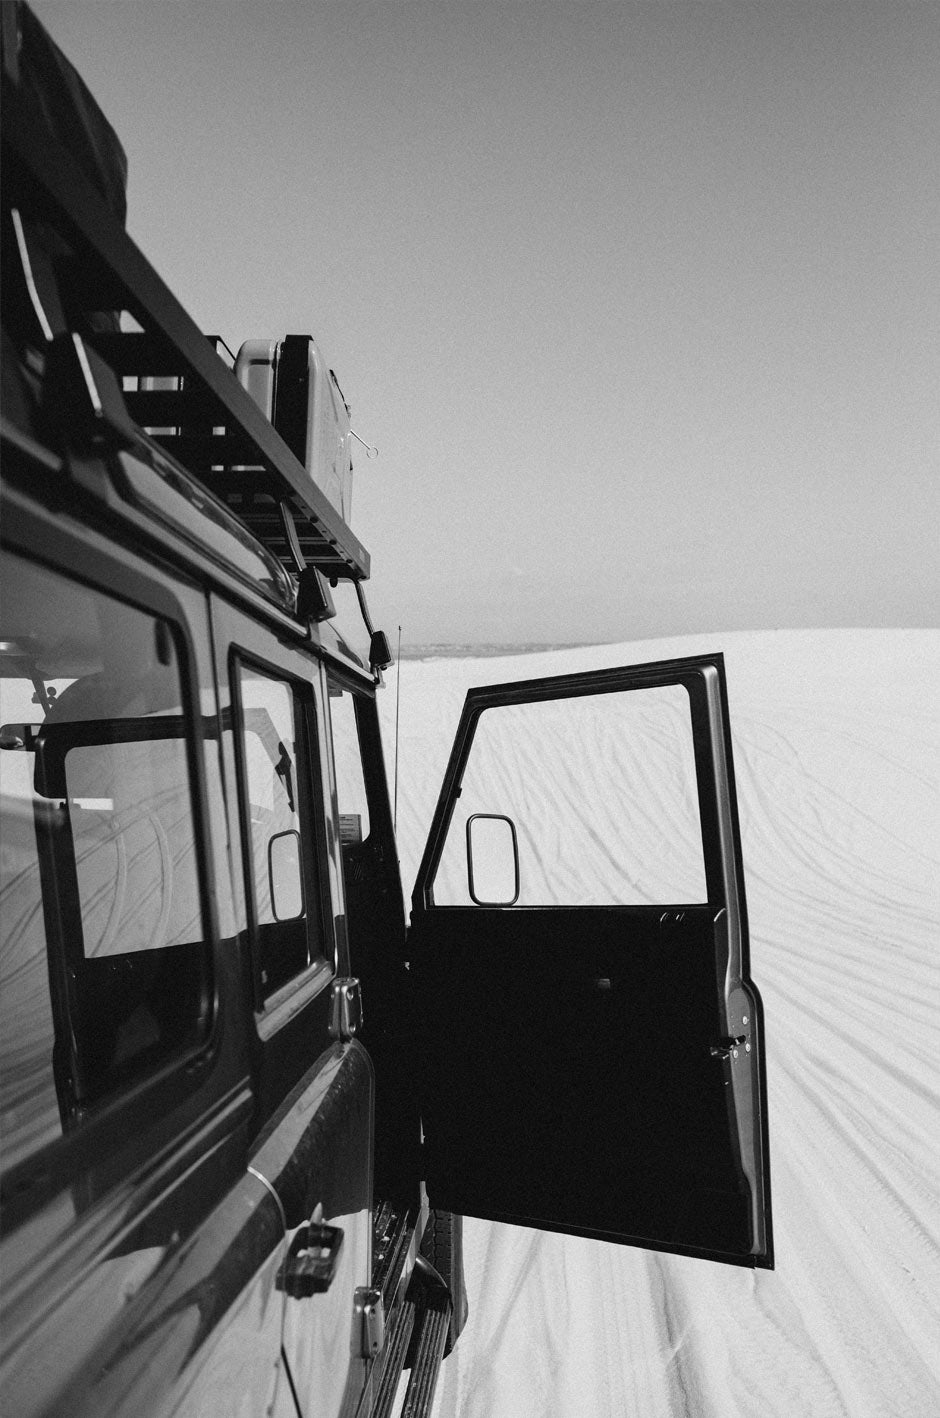 Travelling across AU in a landrover